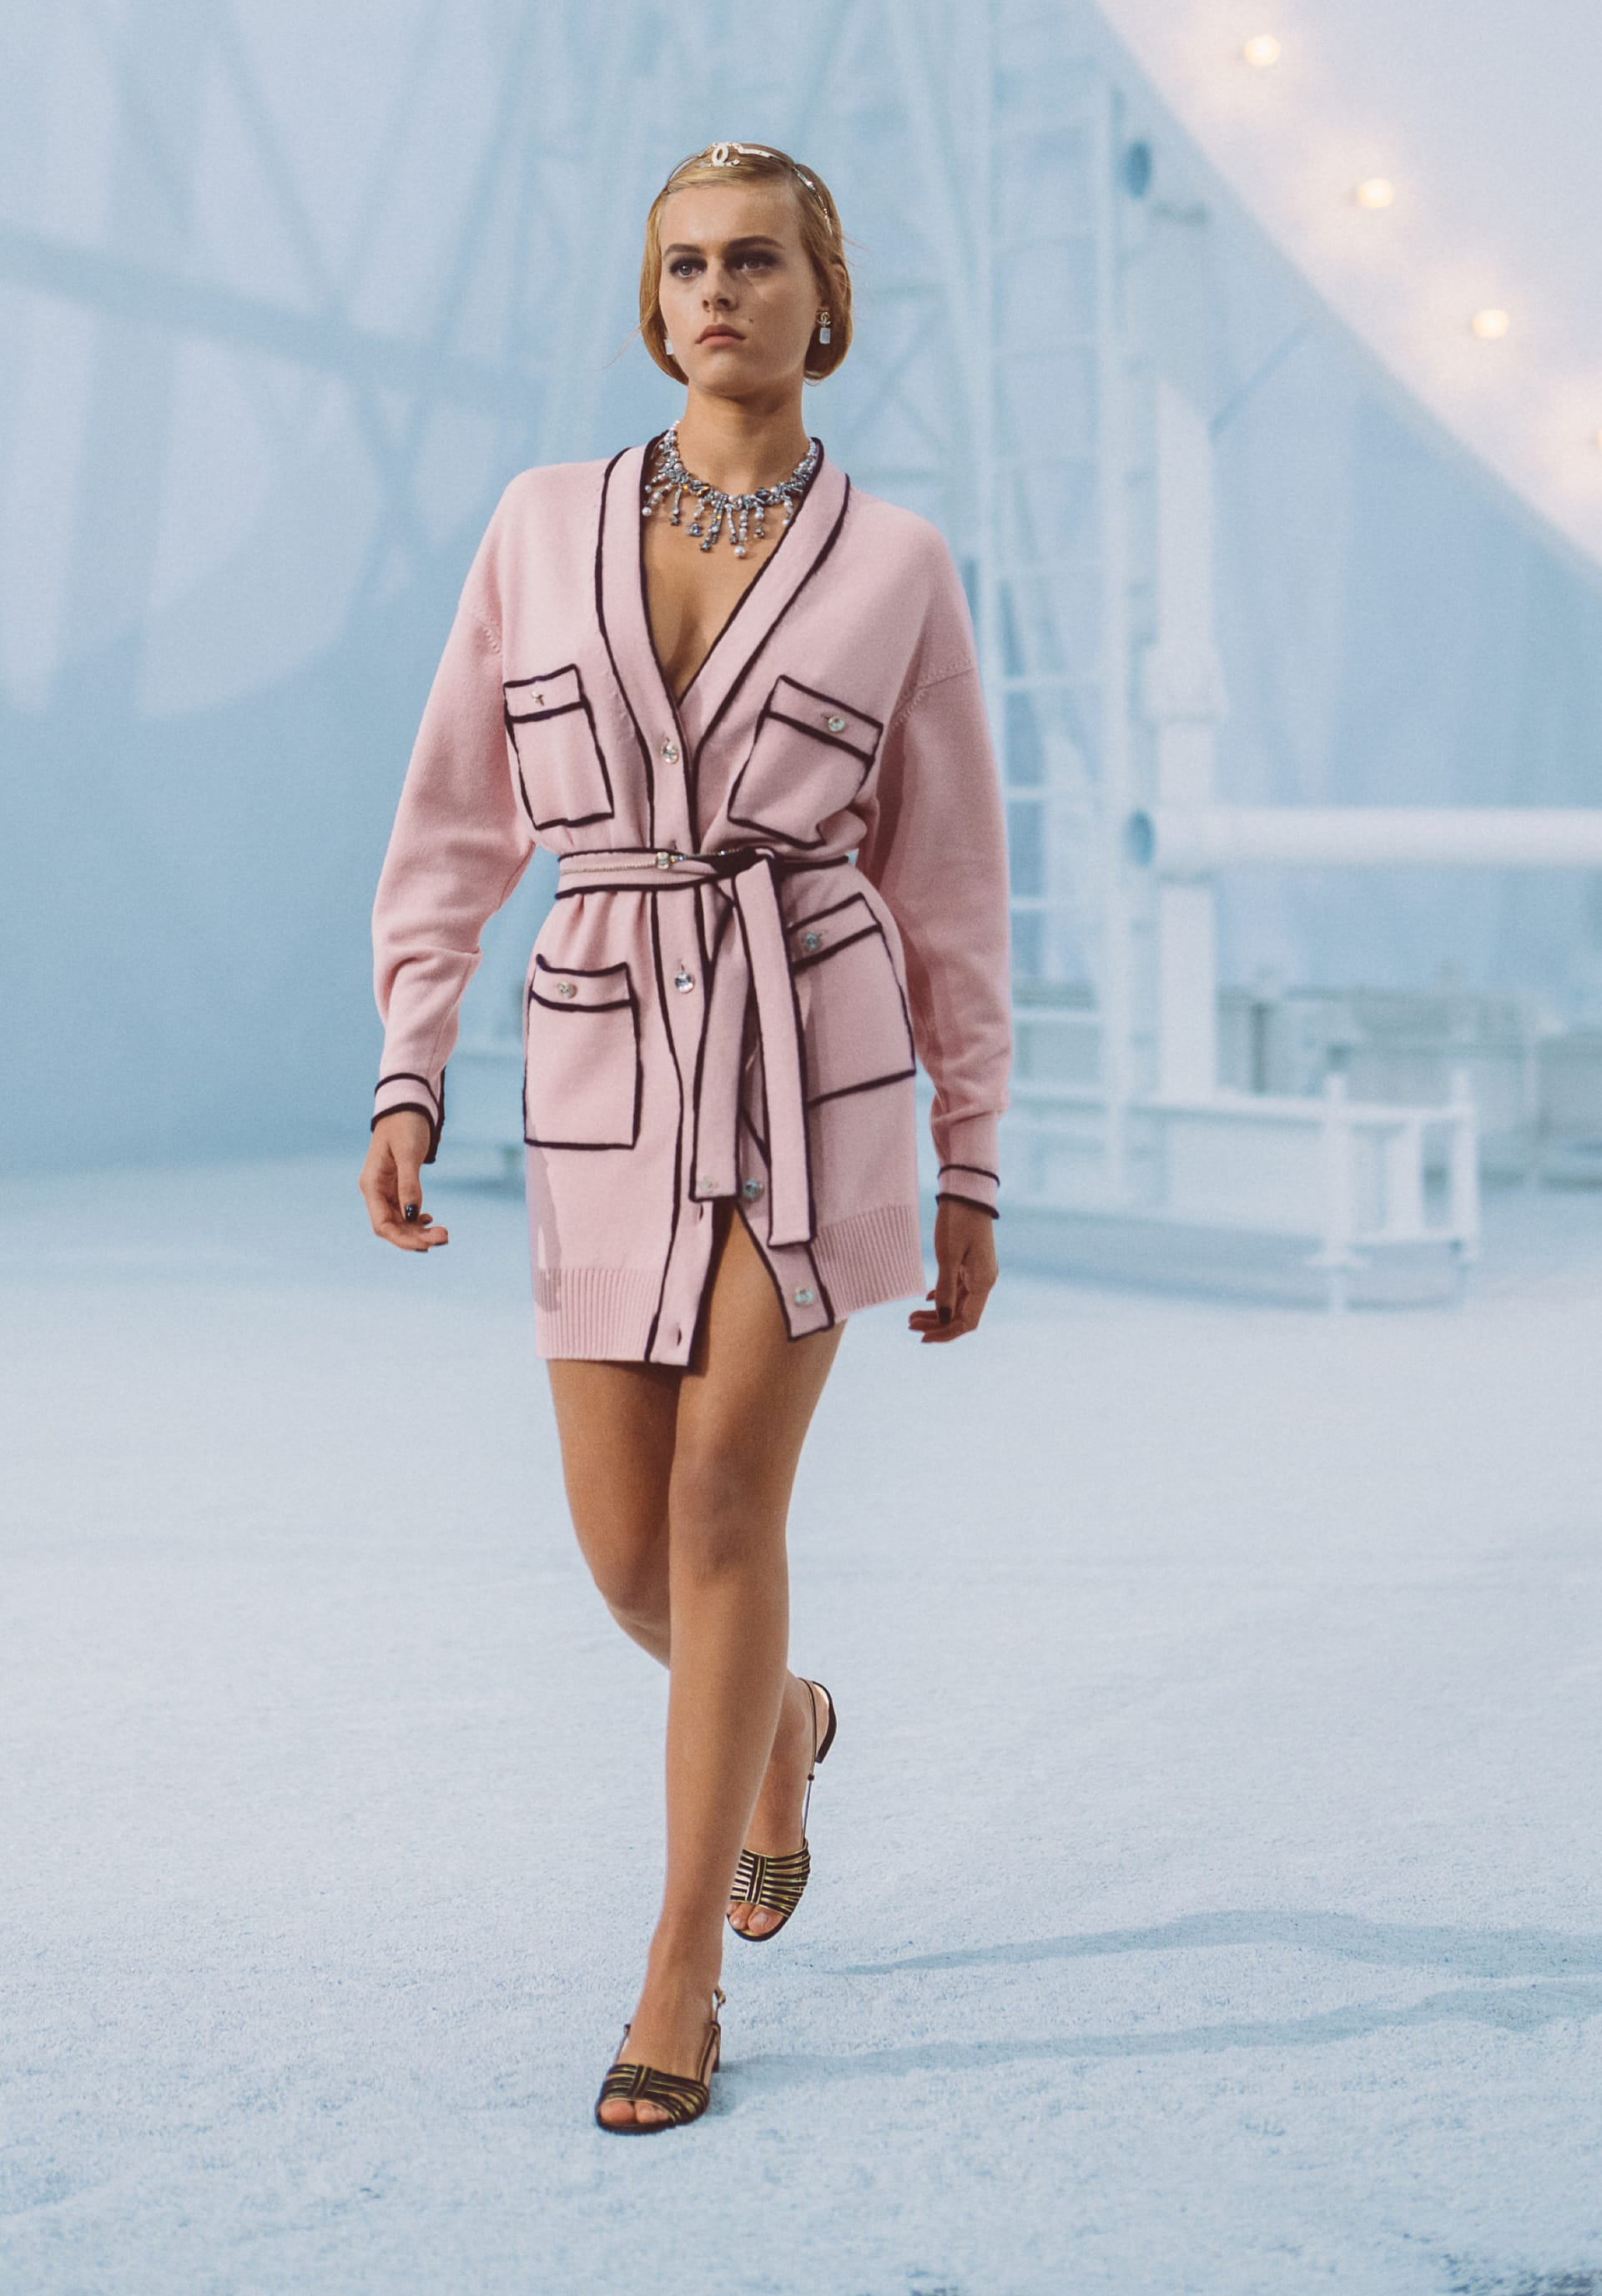 View 1 - Look12 - Spring-Summer 2021 - see full sized version